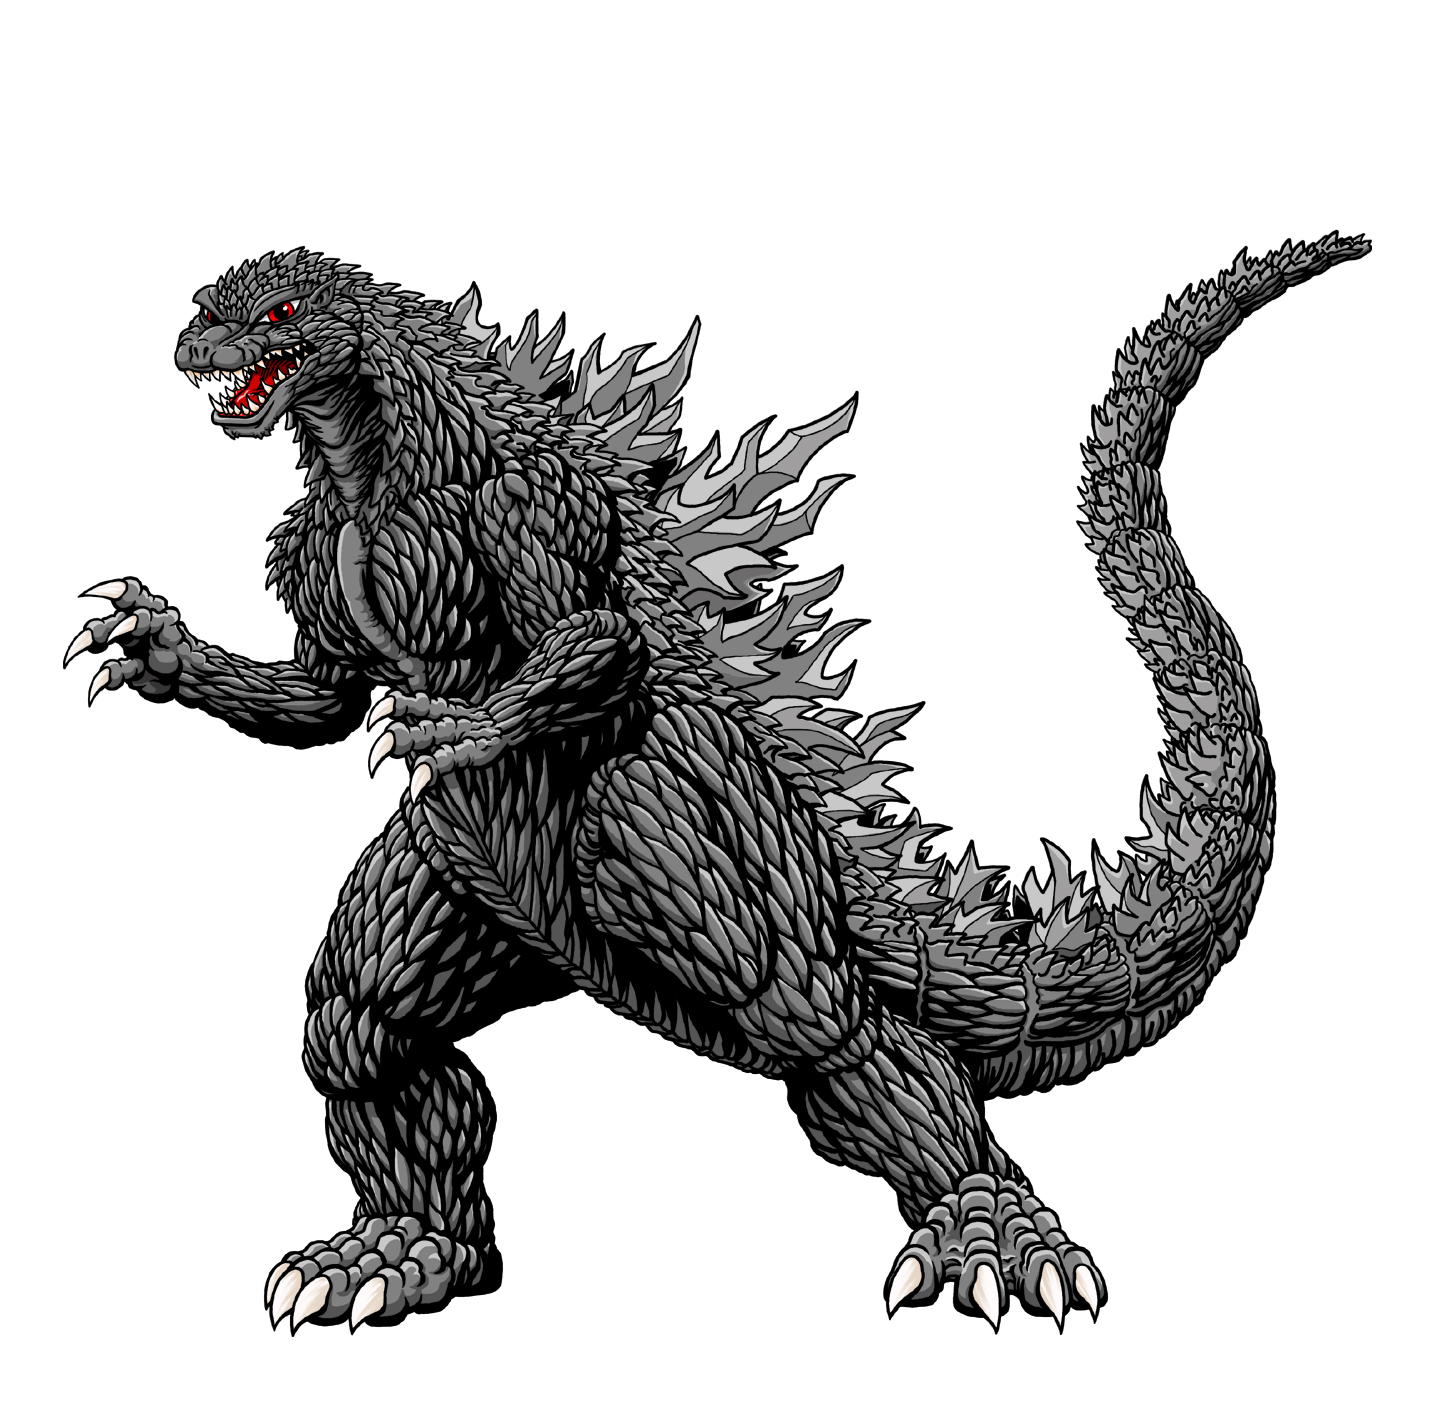 Godzilla Mothra Silhouette Drawing Clip art.